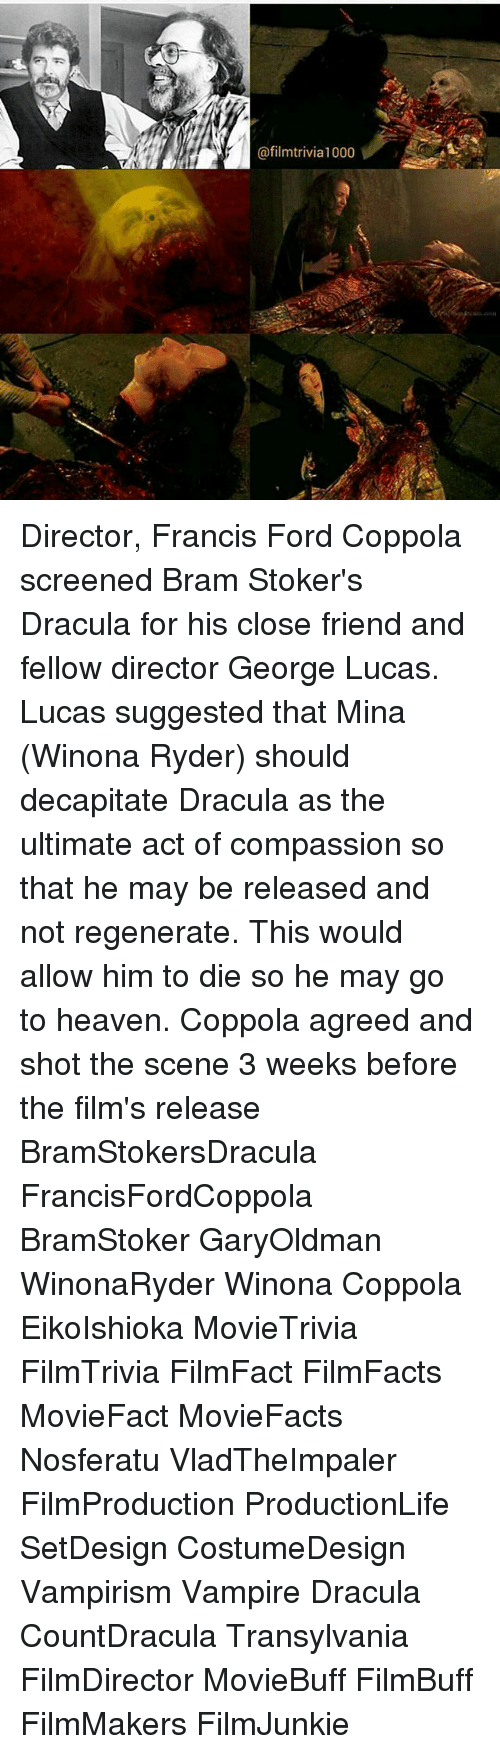 Heaven, Memes, and Dracula: @filmtrivia1000 Director, Francis Ford Coppola screened Bram Stoker's Dracula for his close friend and fellow director George Lucas. Lucas suggested that Mina (Winona Ryder) should decapitate Dracula as the ultimate act of compassion so that he may be released and not regenerate. This would allow him to die so he may go to heaven. Coppola agreed and shot the scene 3 weeks before the film's release ☆ ☆ BramStokersDracula FrancisFordCoppola BramStoker GaryOldman WinonaRyder Winona Coppola EikoIshioka MovieTrivia FilmTrivia FilmFact FilmFacts MovieFact MovieFacts Nosferatu VladTheImpaler FilmProduction ProductionLife SetDesign CostumeDesign Vampirism Vampire Dracula CountDracula Transylvania FilmDirector MovieBuff FilmBuff FilmMakers FilmJunkie